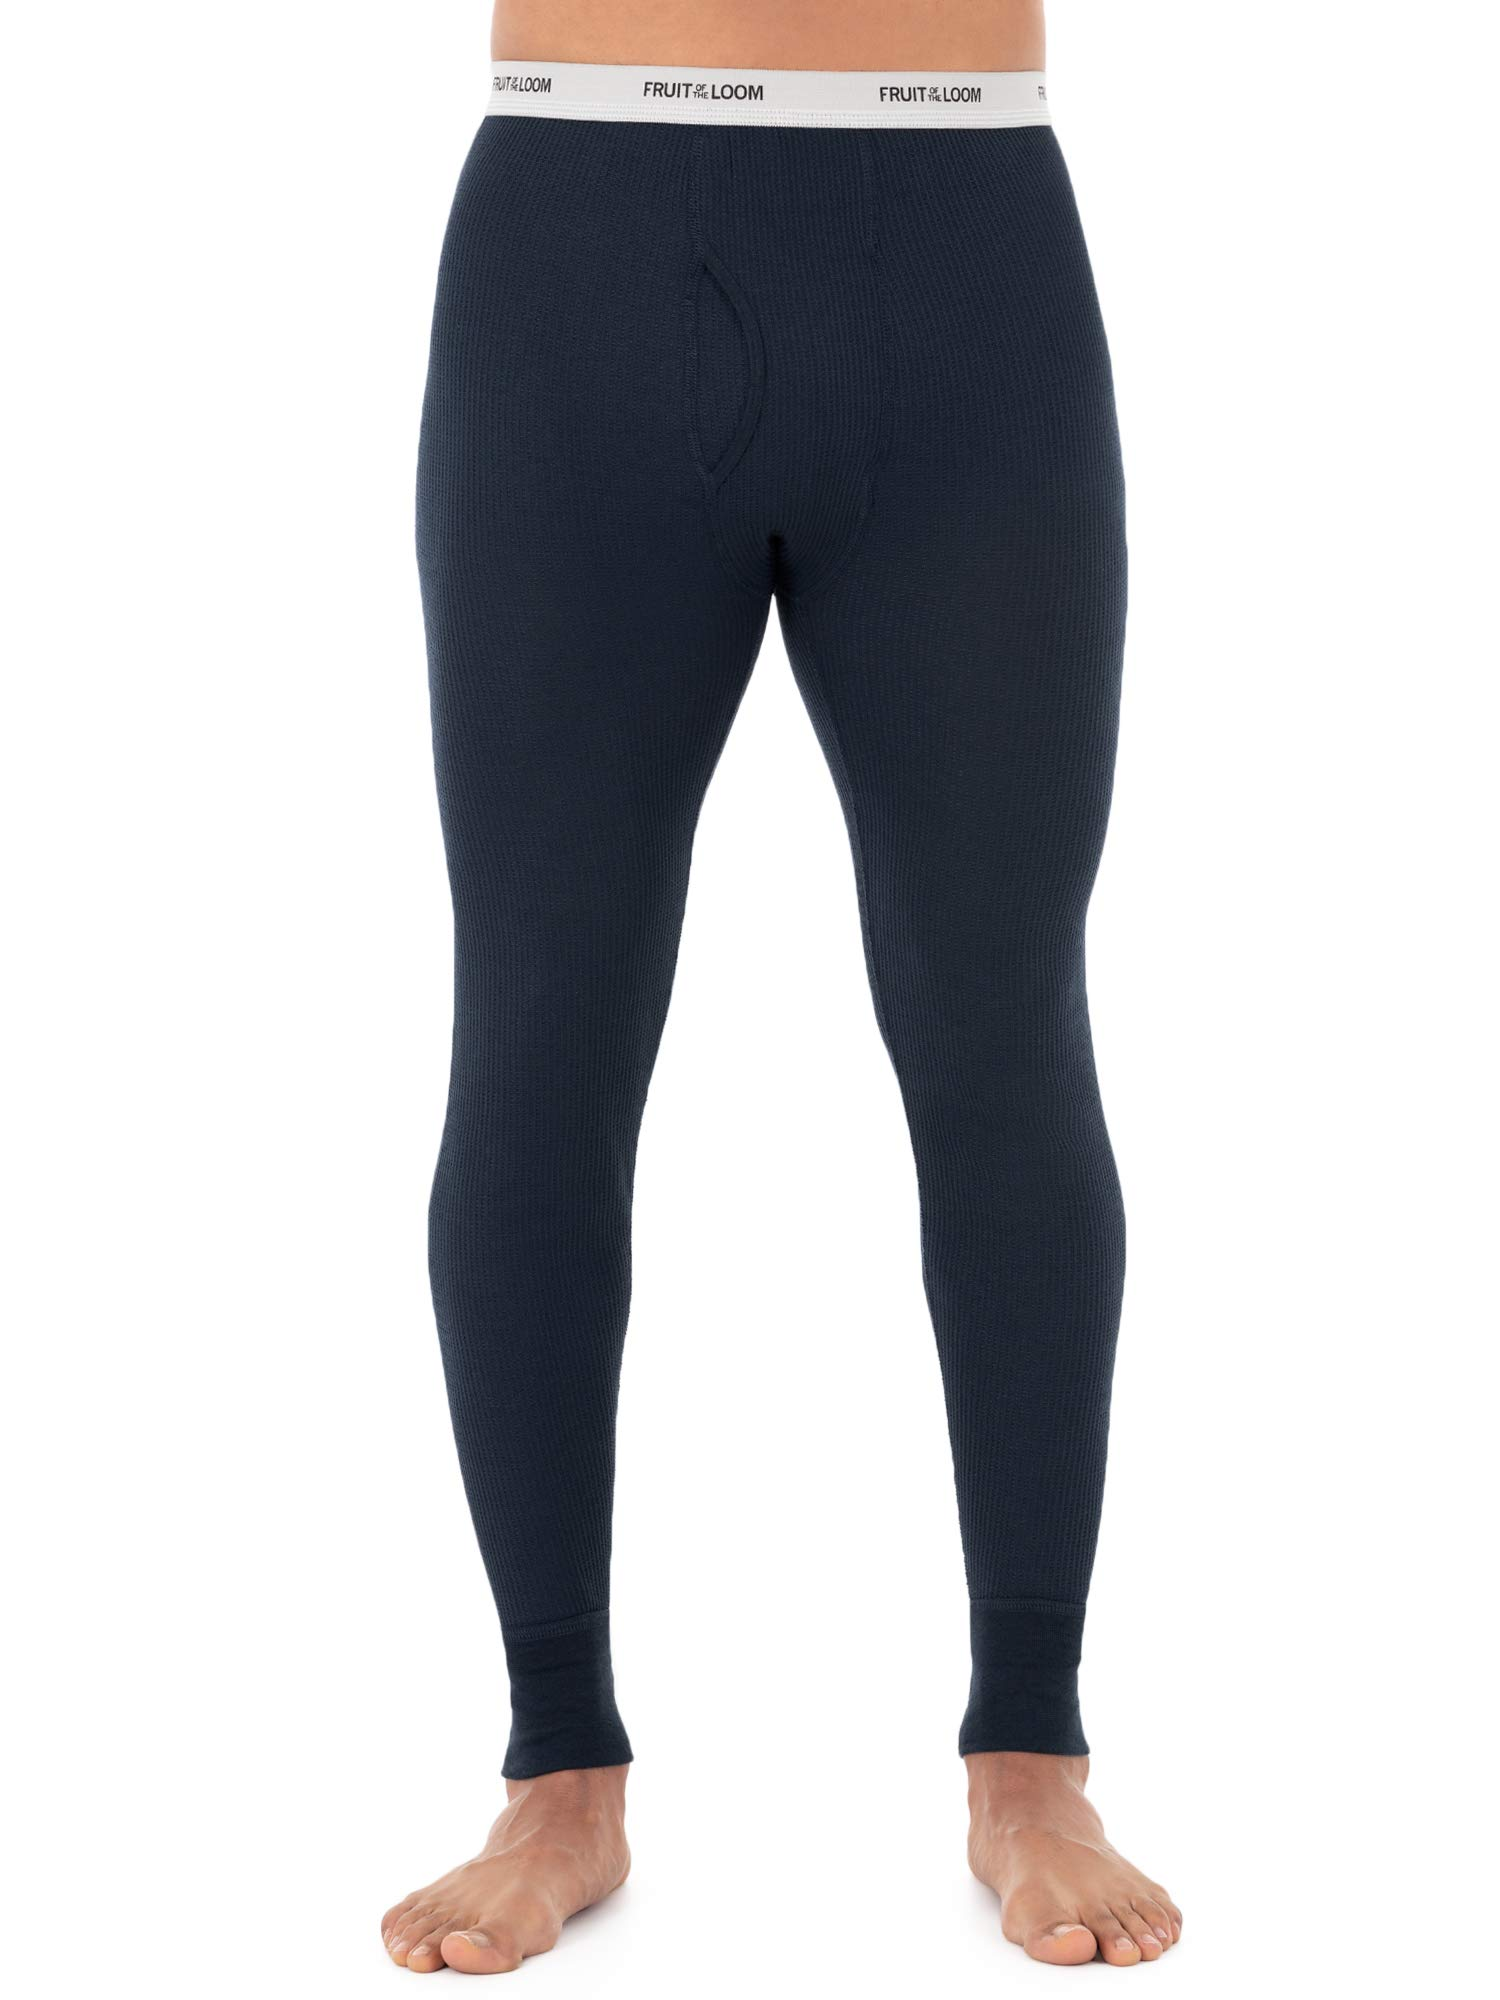 Fruit of the Loom Men's Classic Midweight Waffle Thermal Underwear Bottoms (1 &2 Packs), Navy, Small by Fruit of the Loom